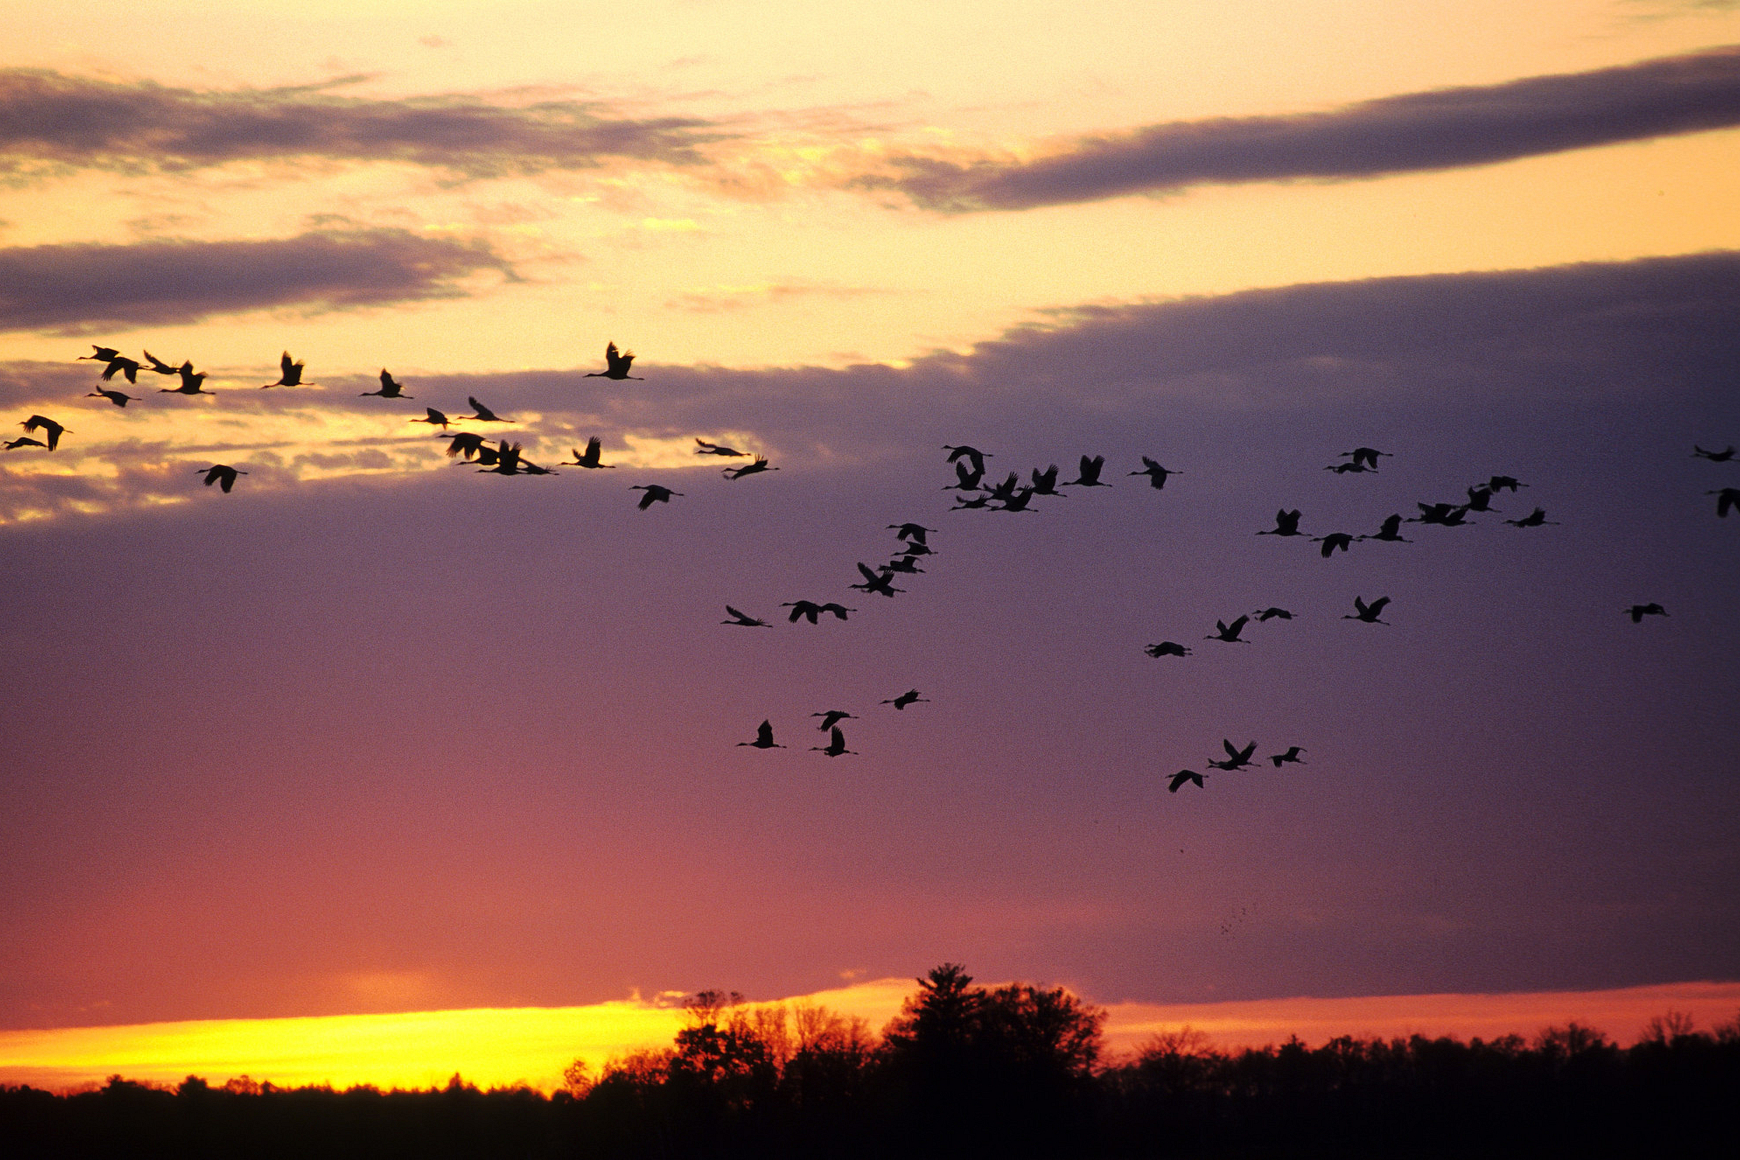 Sandhill cranes fly through a pink sunset over marshy area